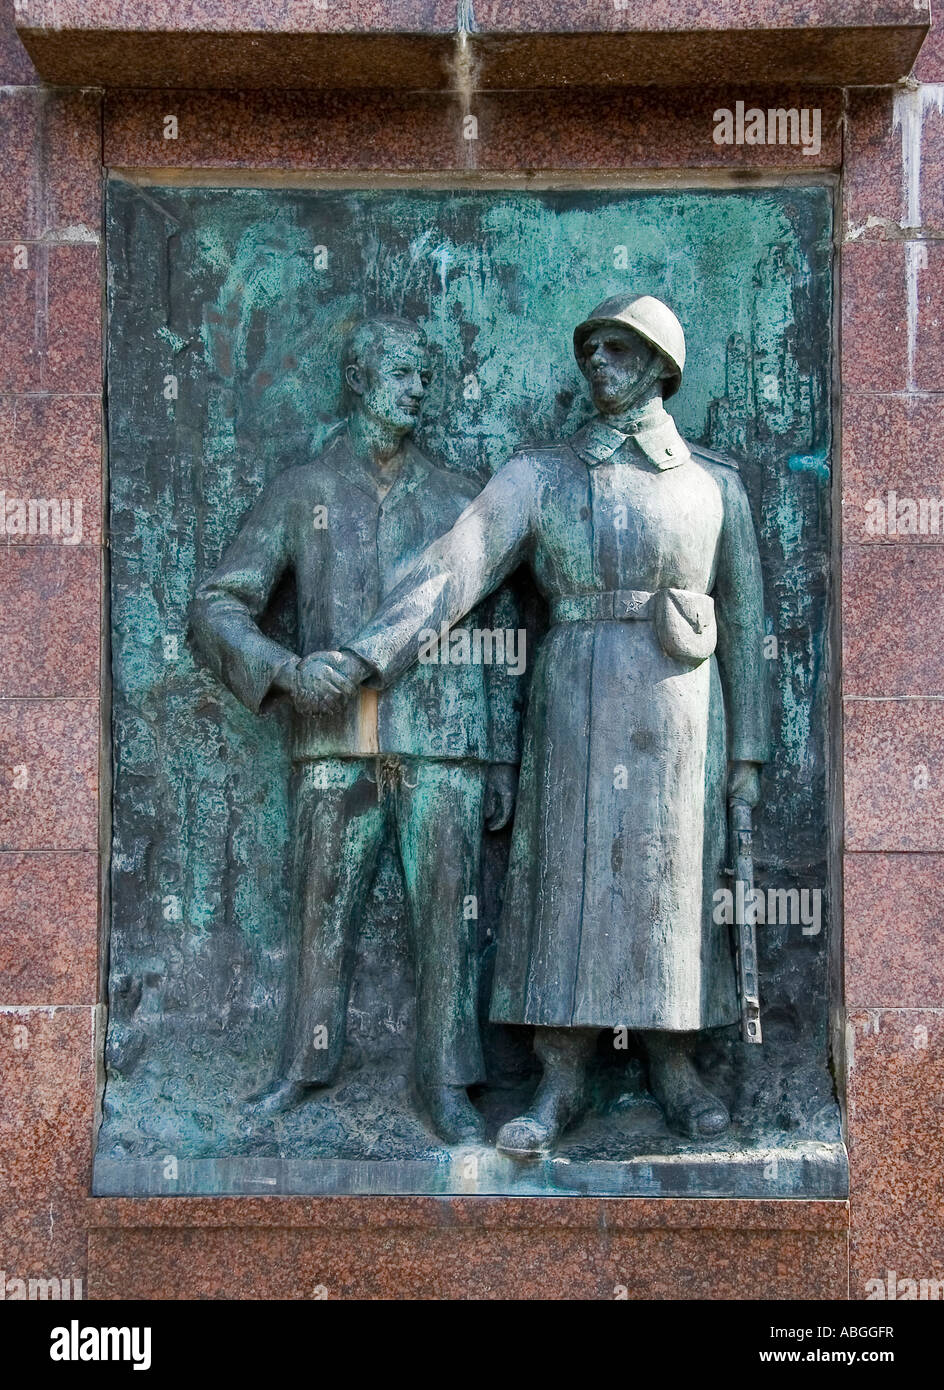 Memorial for Soviet soldiers killed in the Second World War, Stralsund, Mecklenburg-Western Pomerania, Germany - Stock Image